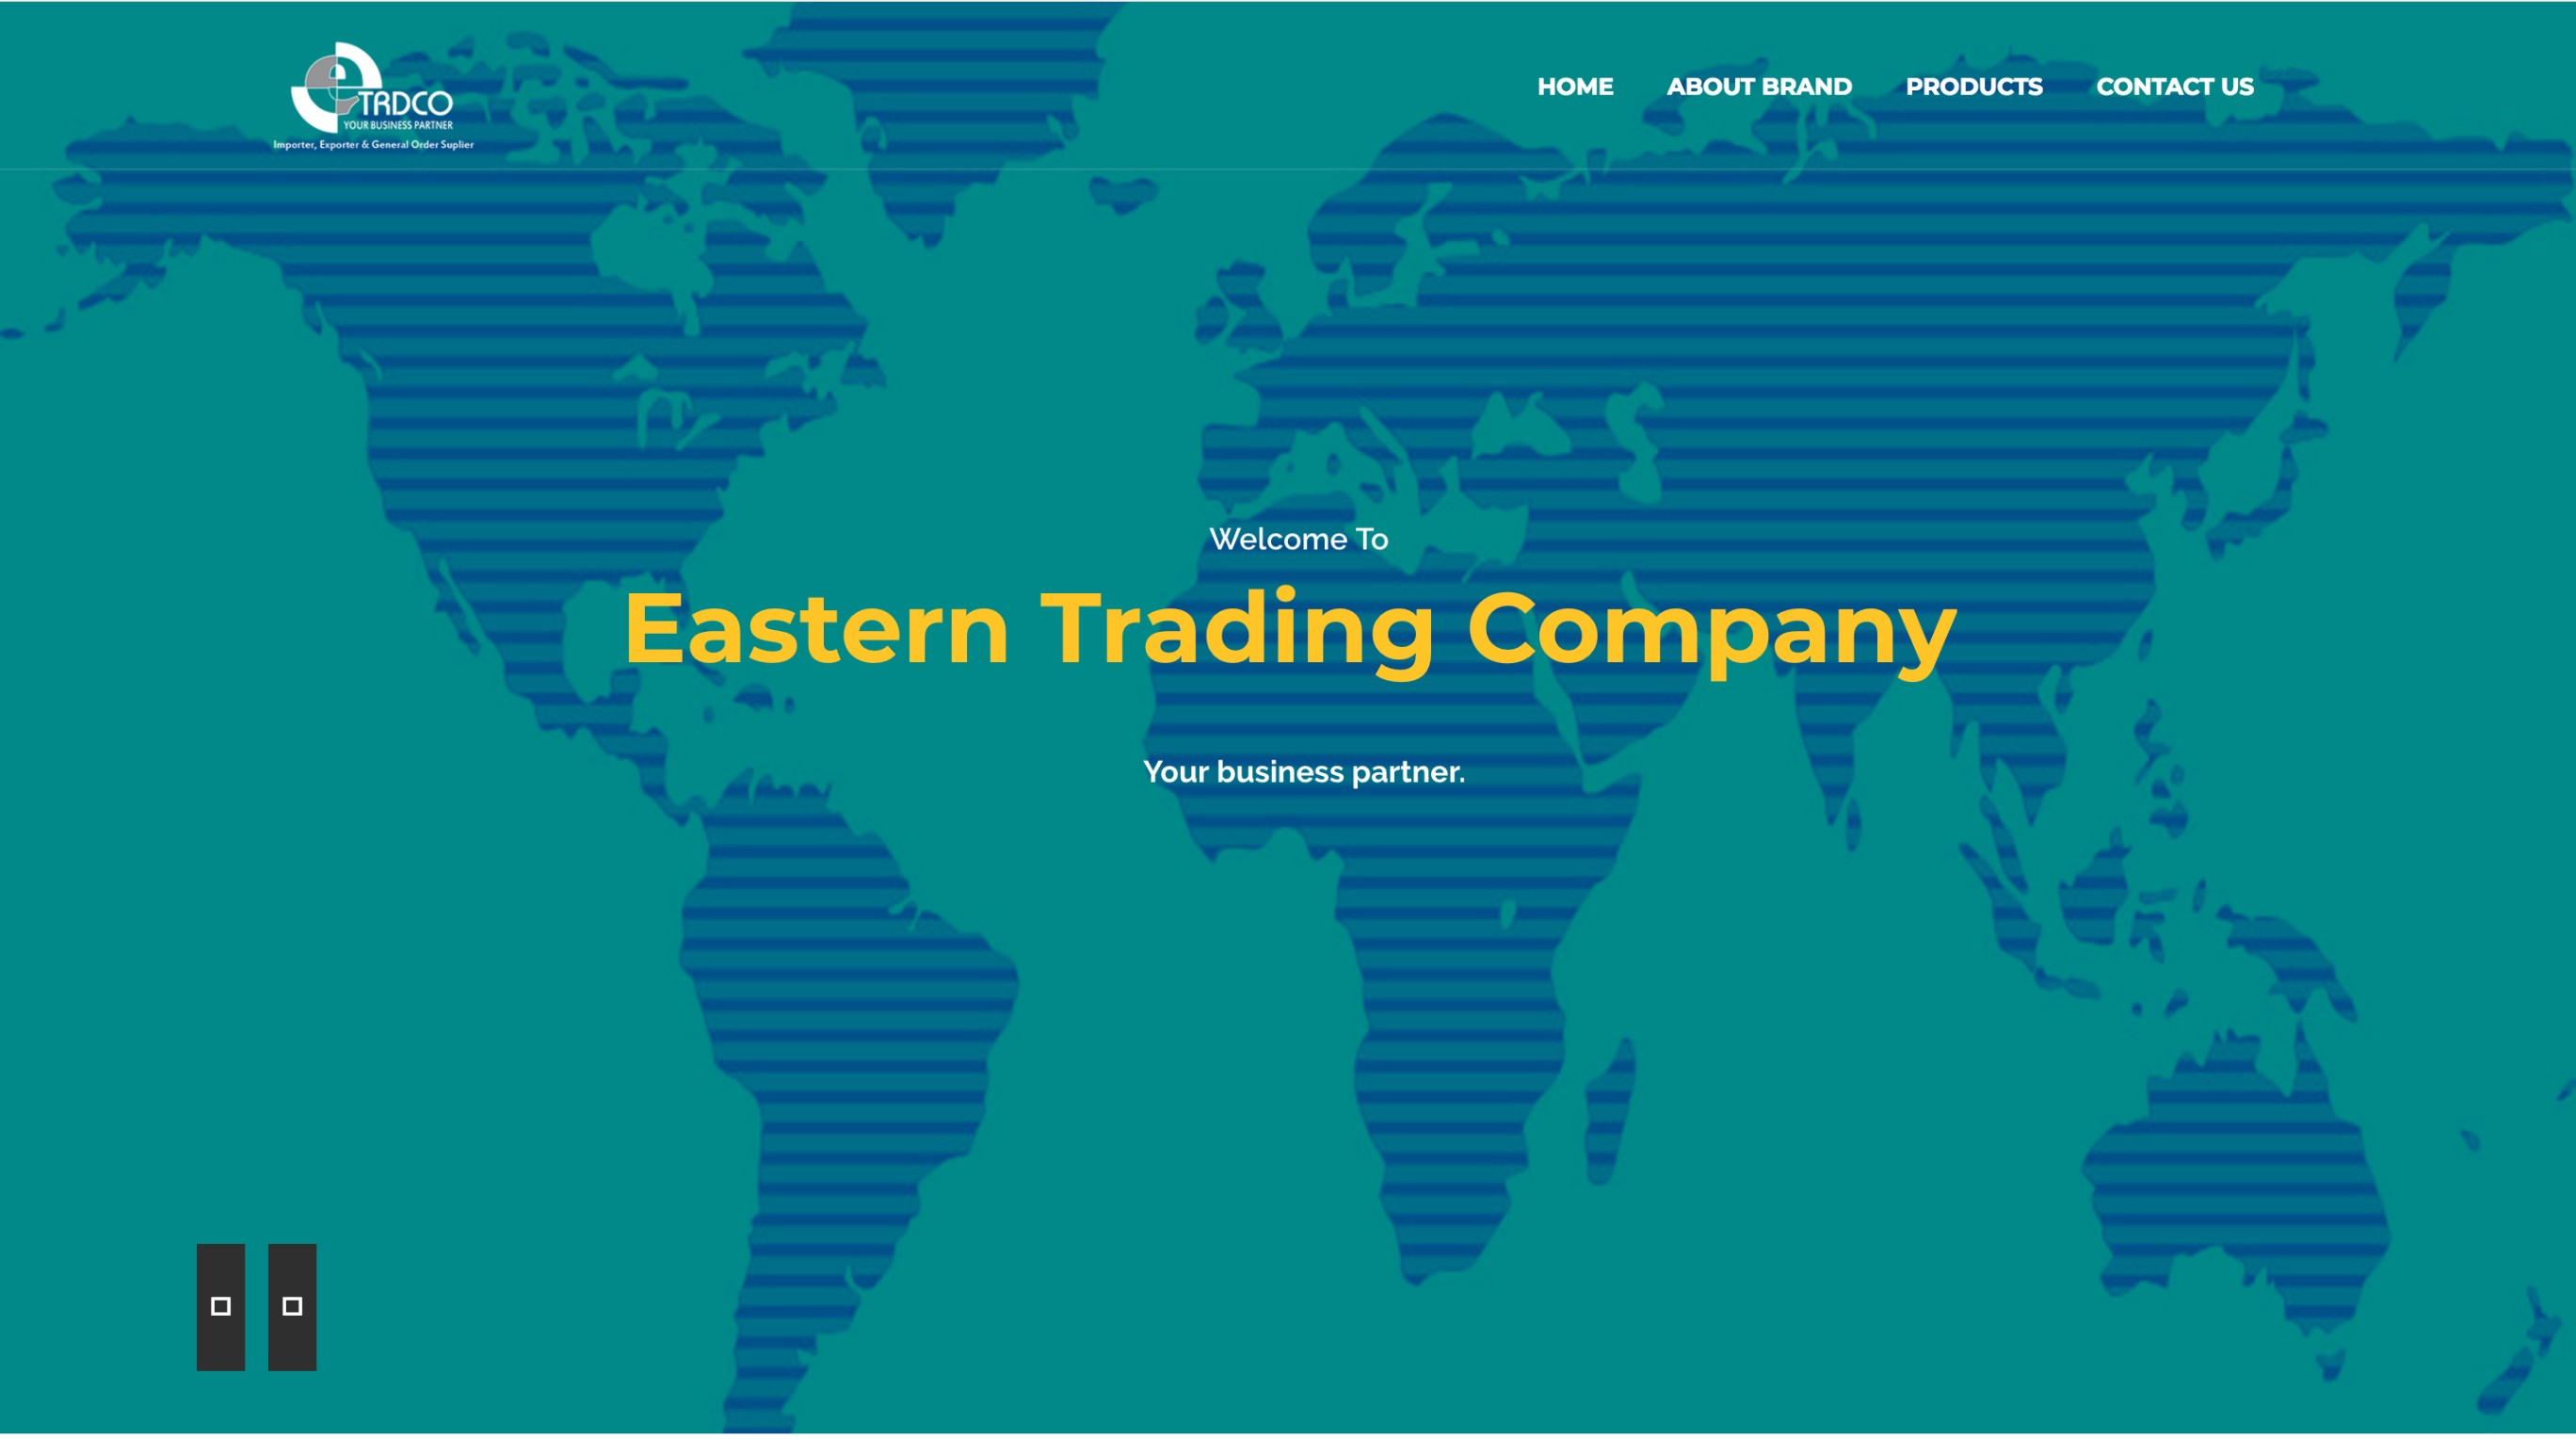 Eastern Trading Company